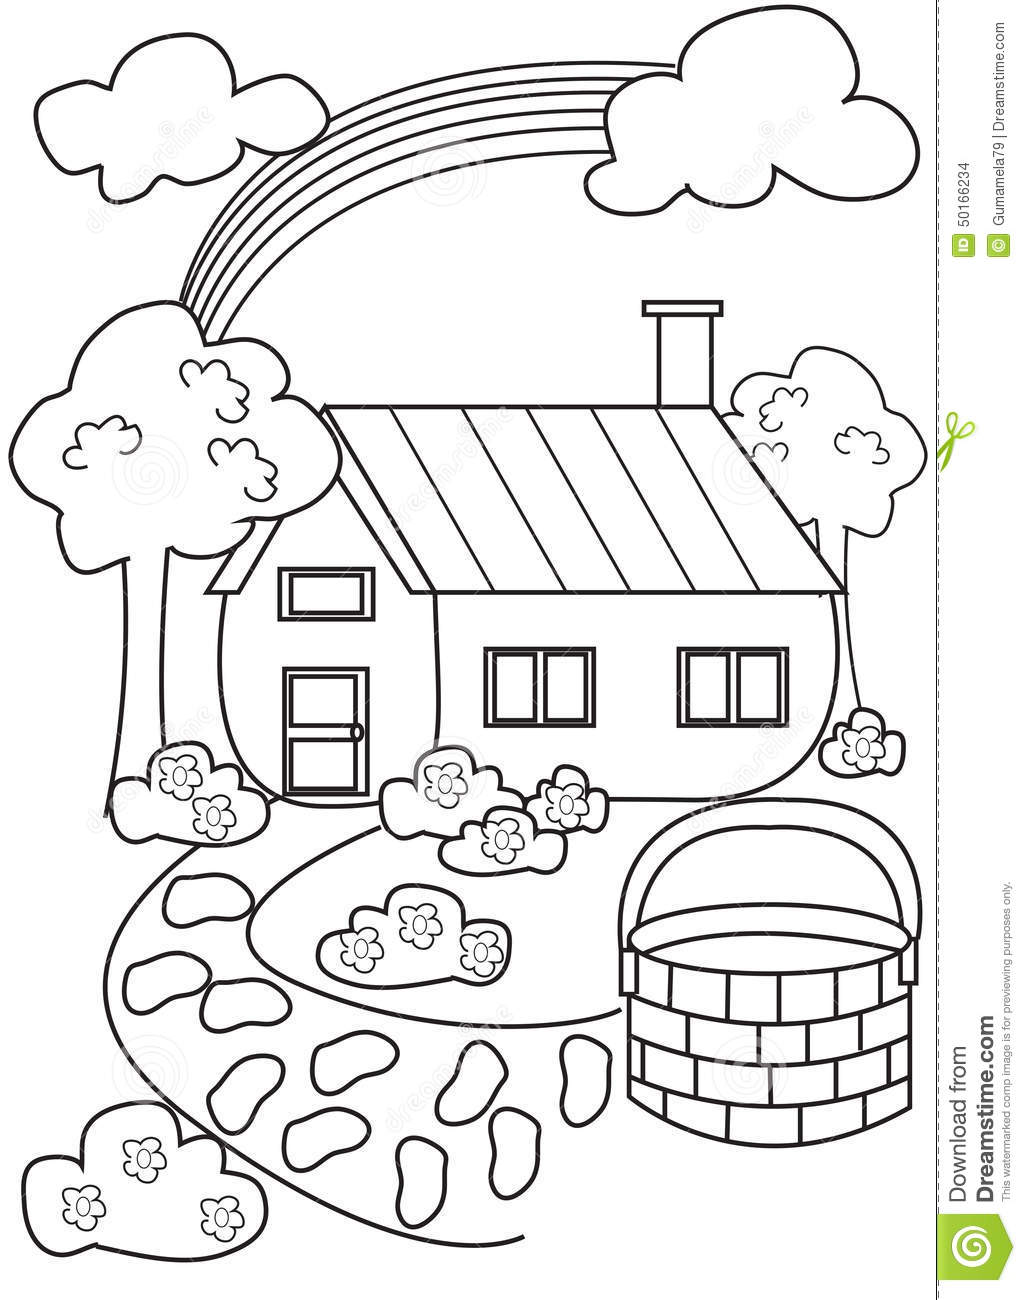 House coloring page stock illustration. Image of artwork